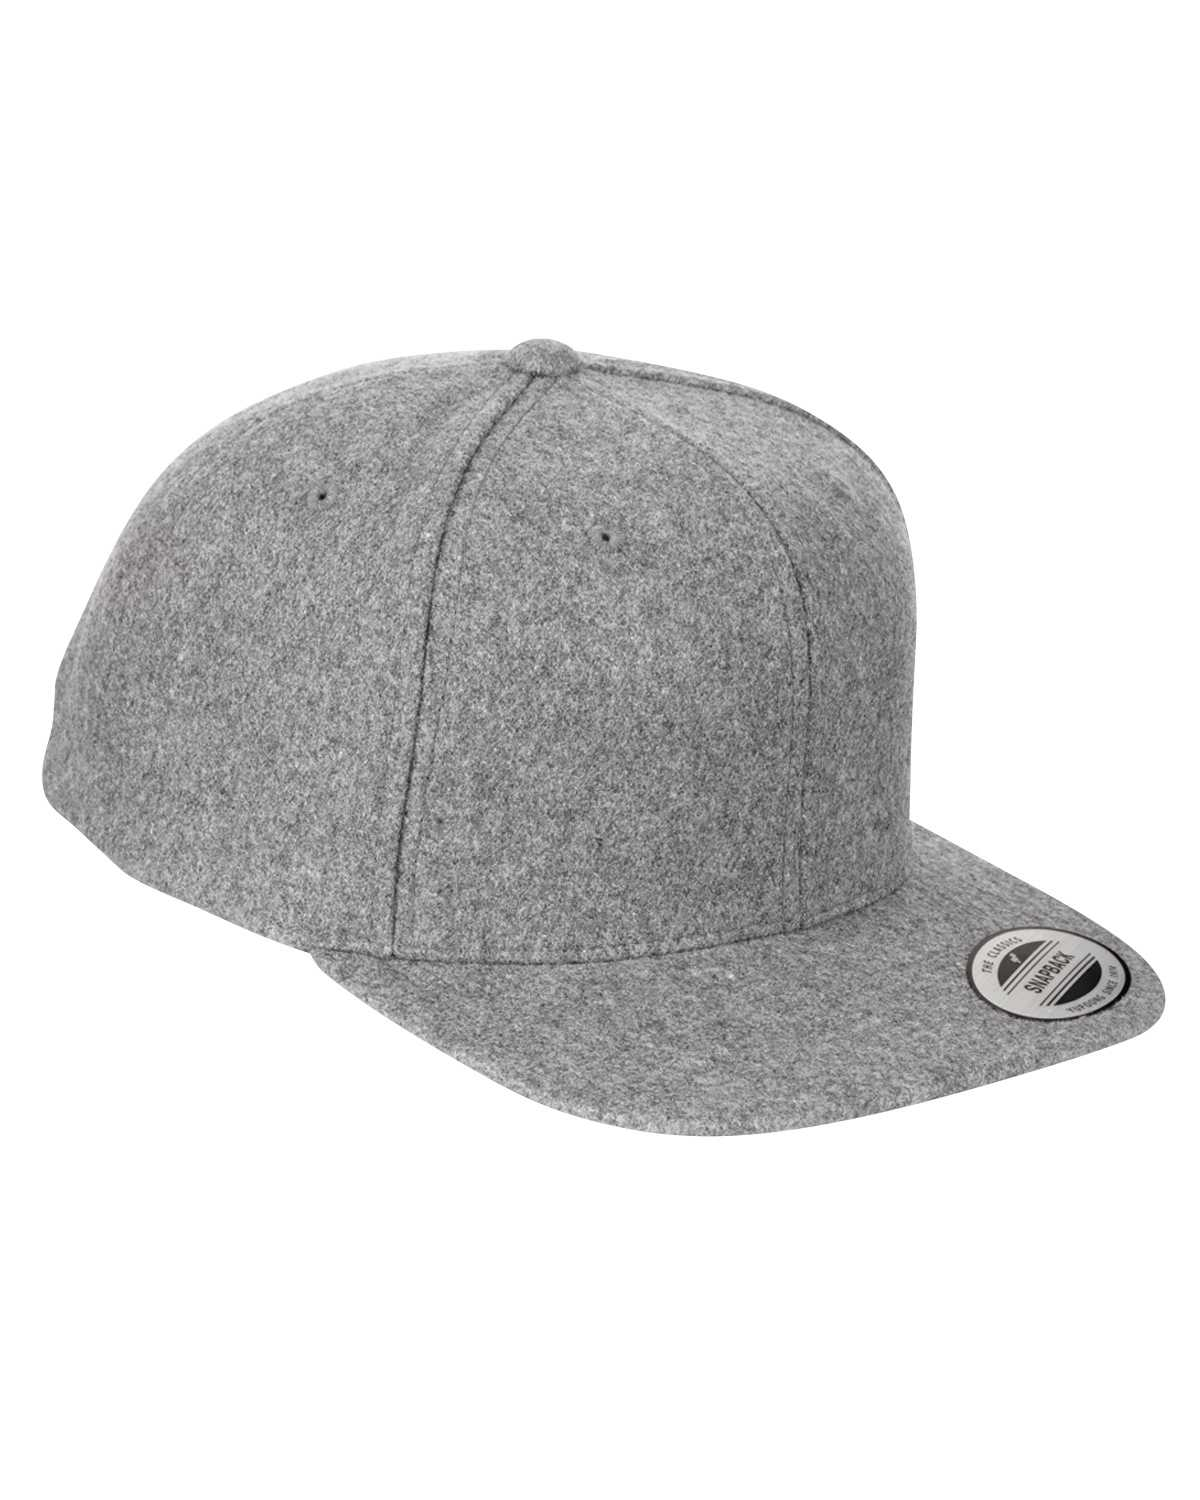 826dd0fbc8a ... 6689 Adult 6-Panel Melton Wool Structured Flat Visor Classic Snapback  Cap. 6689 51 View larger. Previous. 6689 51  6689 45  6689 47  6689 20 ...